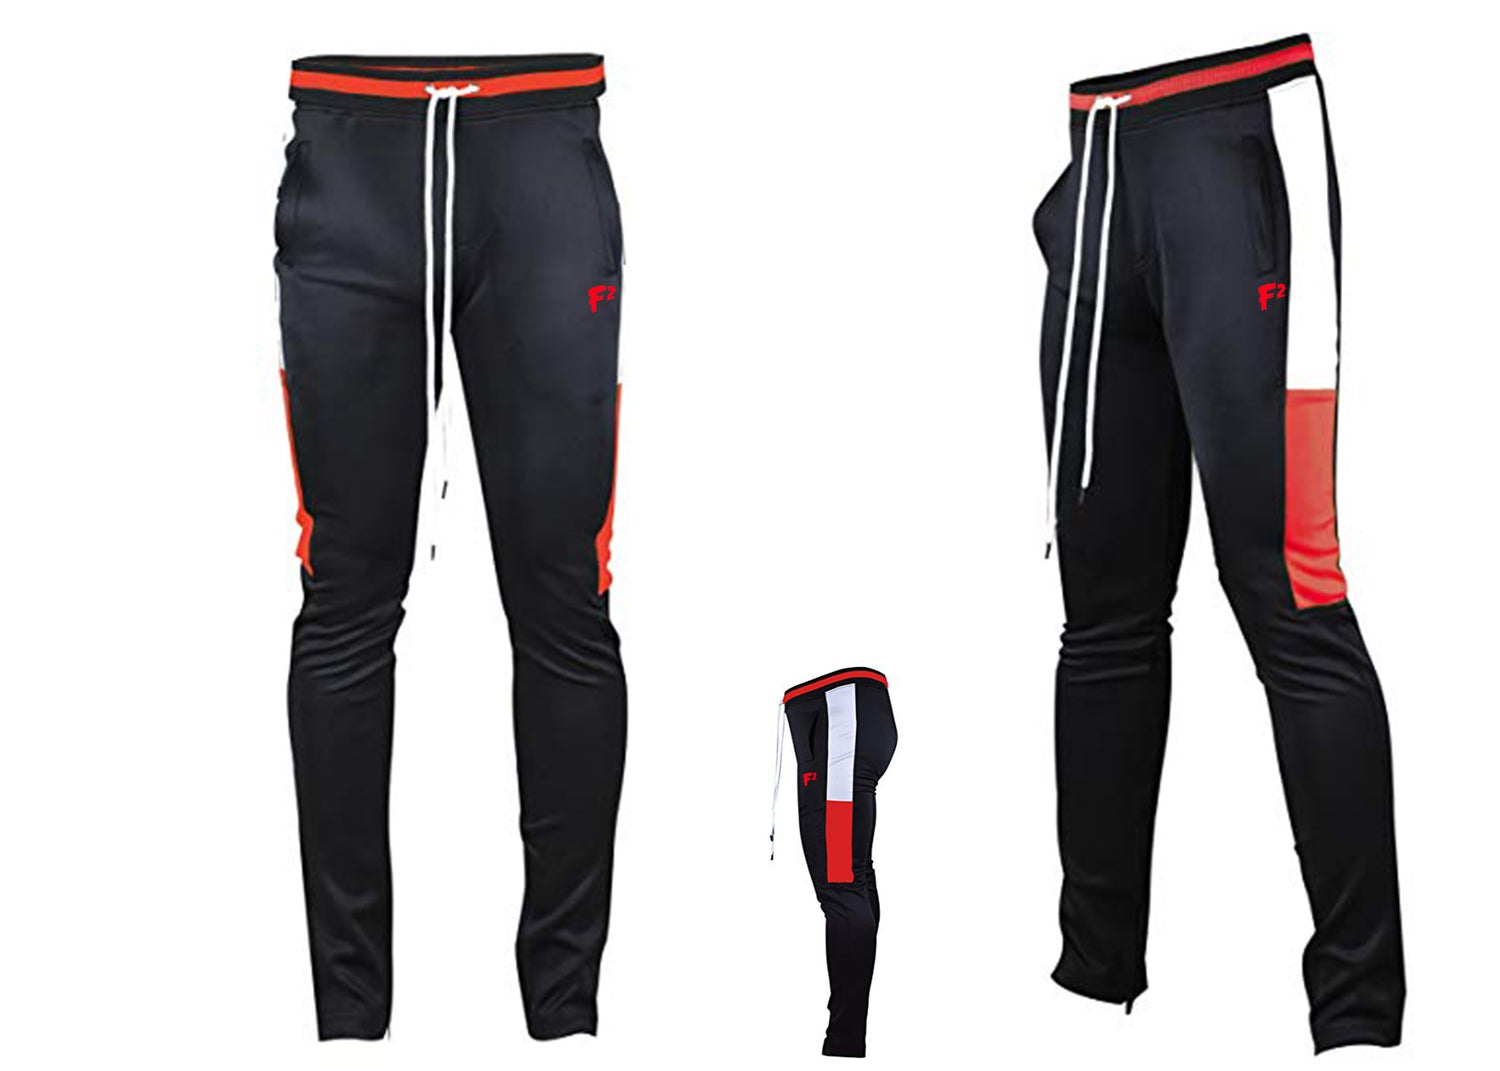 Image of F² black, red , white joggers